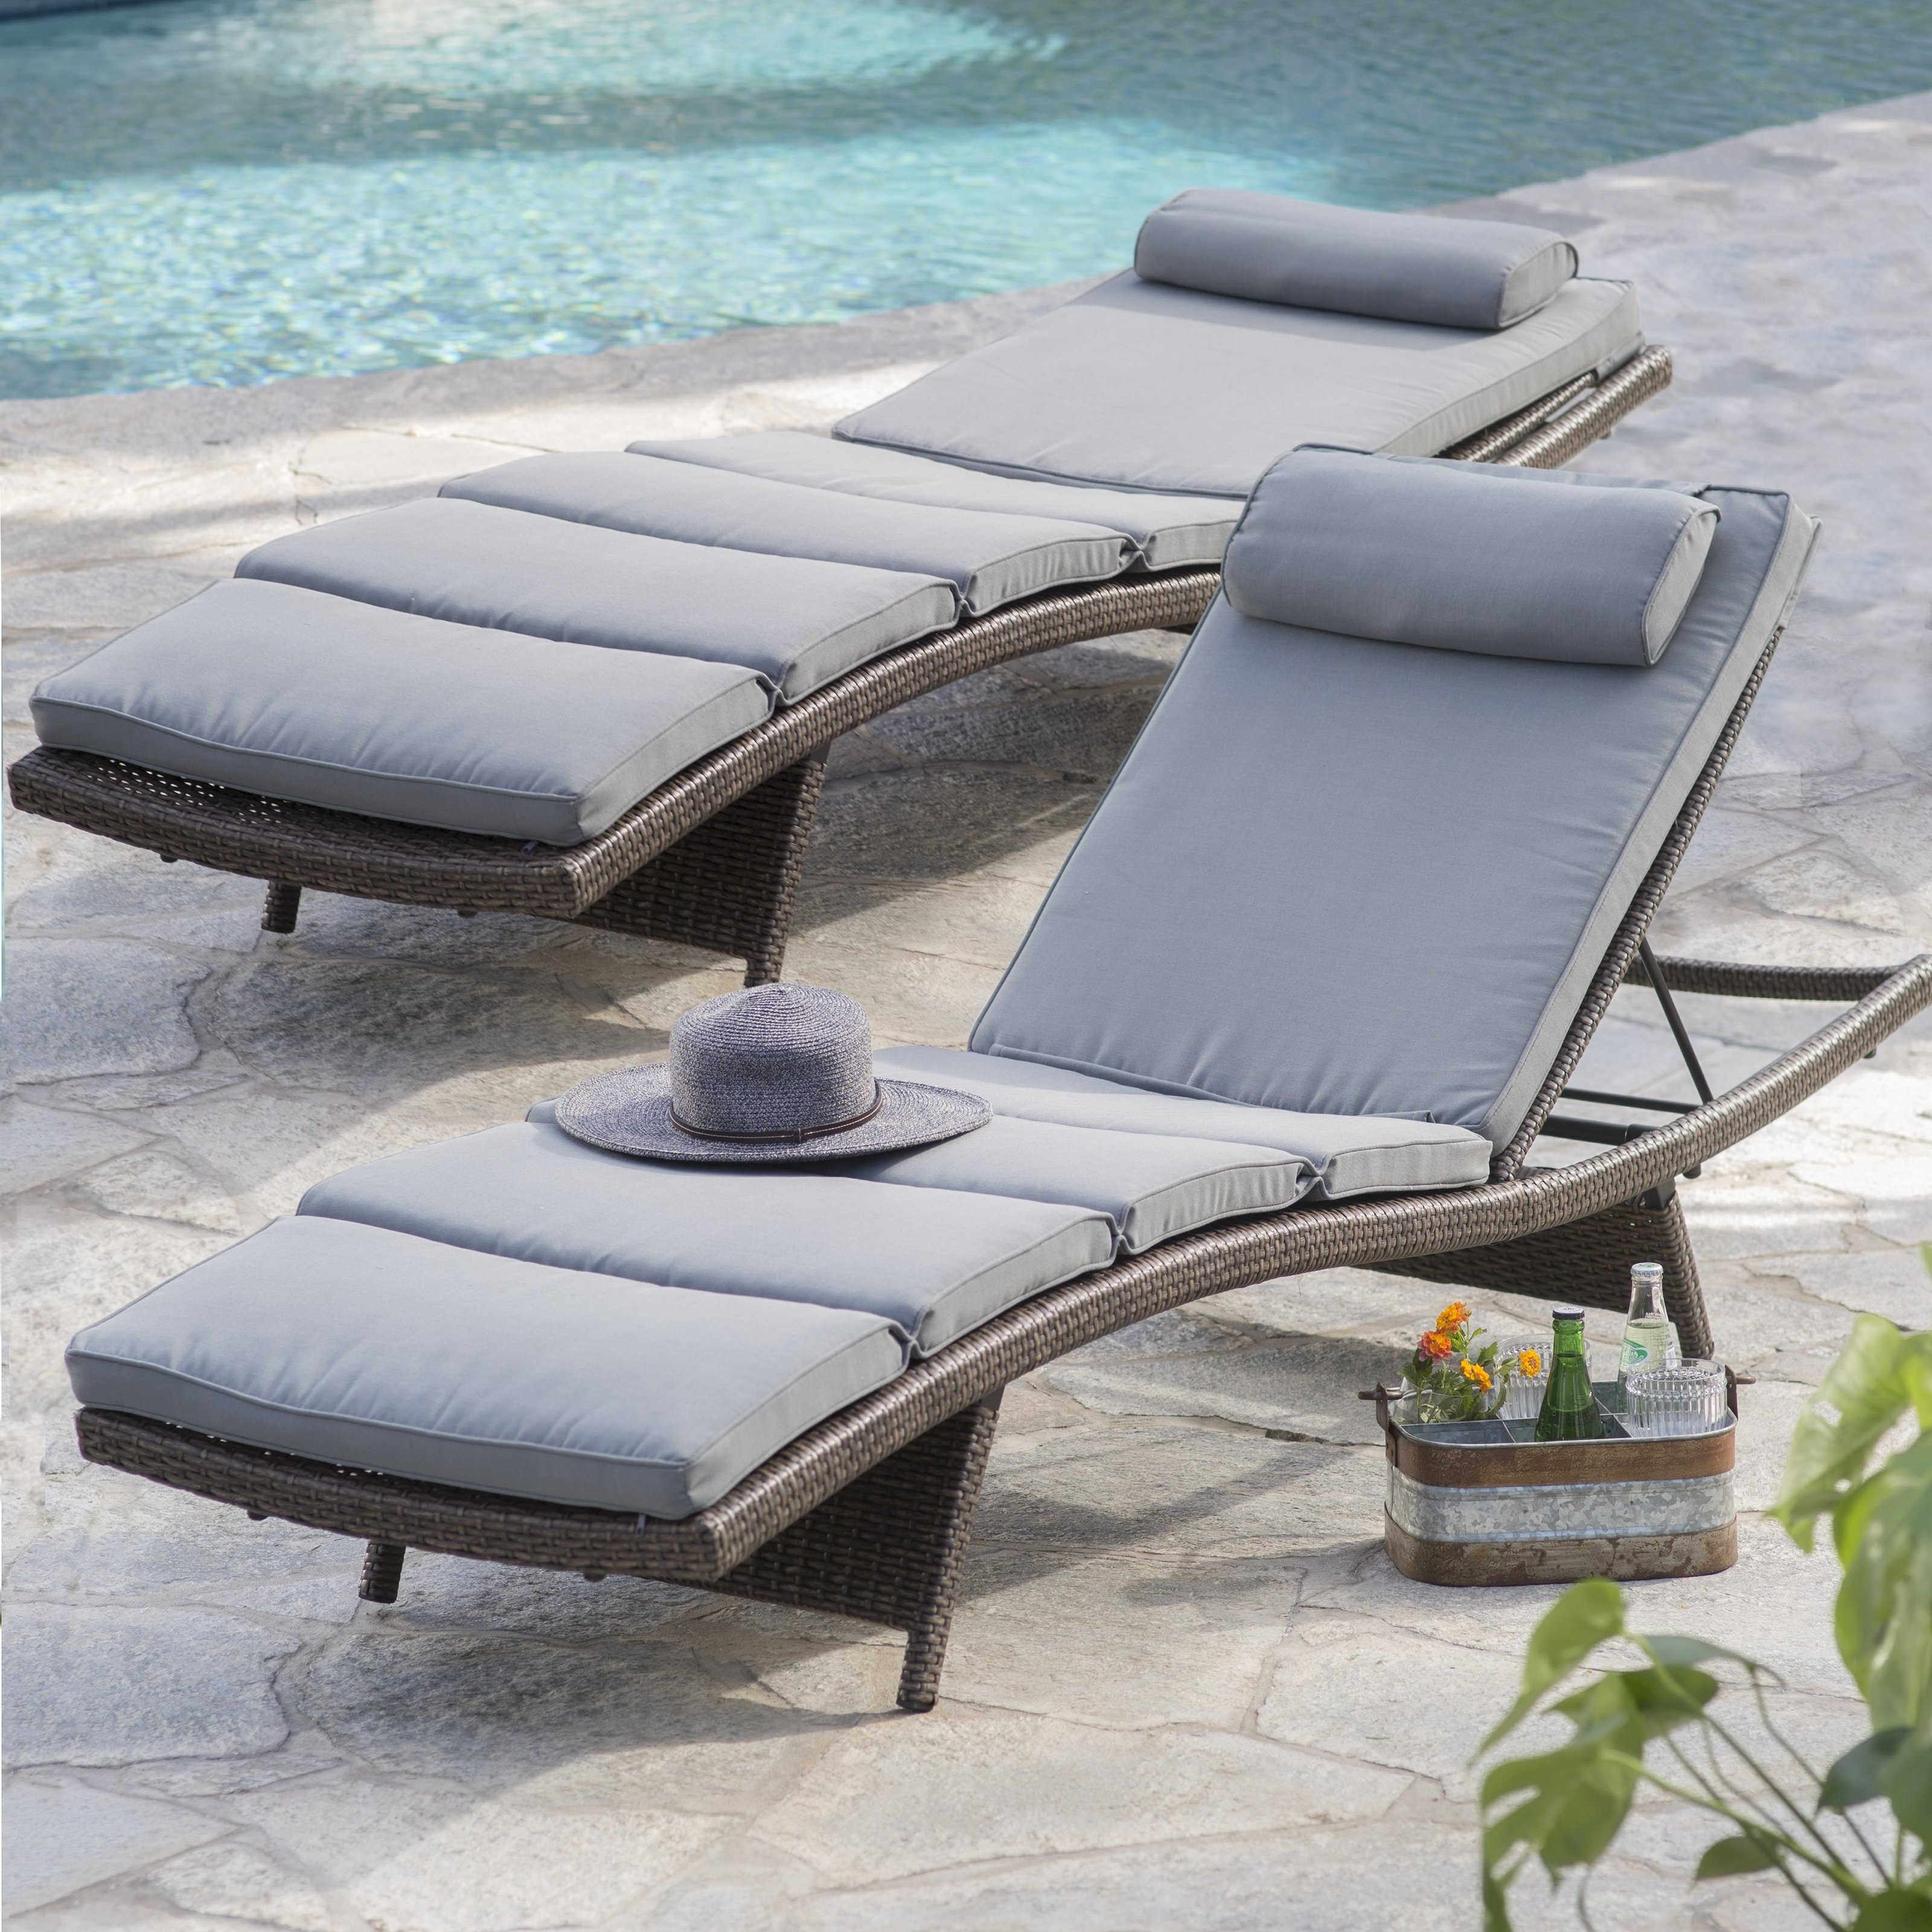 Coral Coast Seacoast Poolside Chaise Lounge – Set Of 2 – White Regarding Most Current Poolside Chaise Lounges (View 3 of 15)